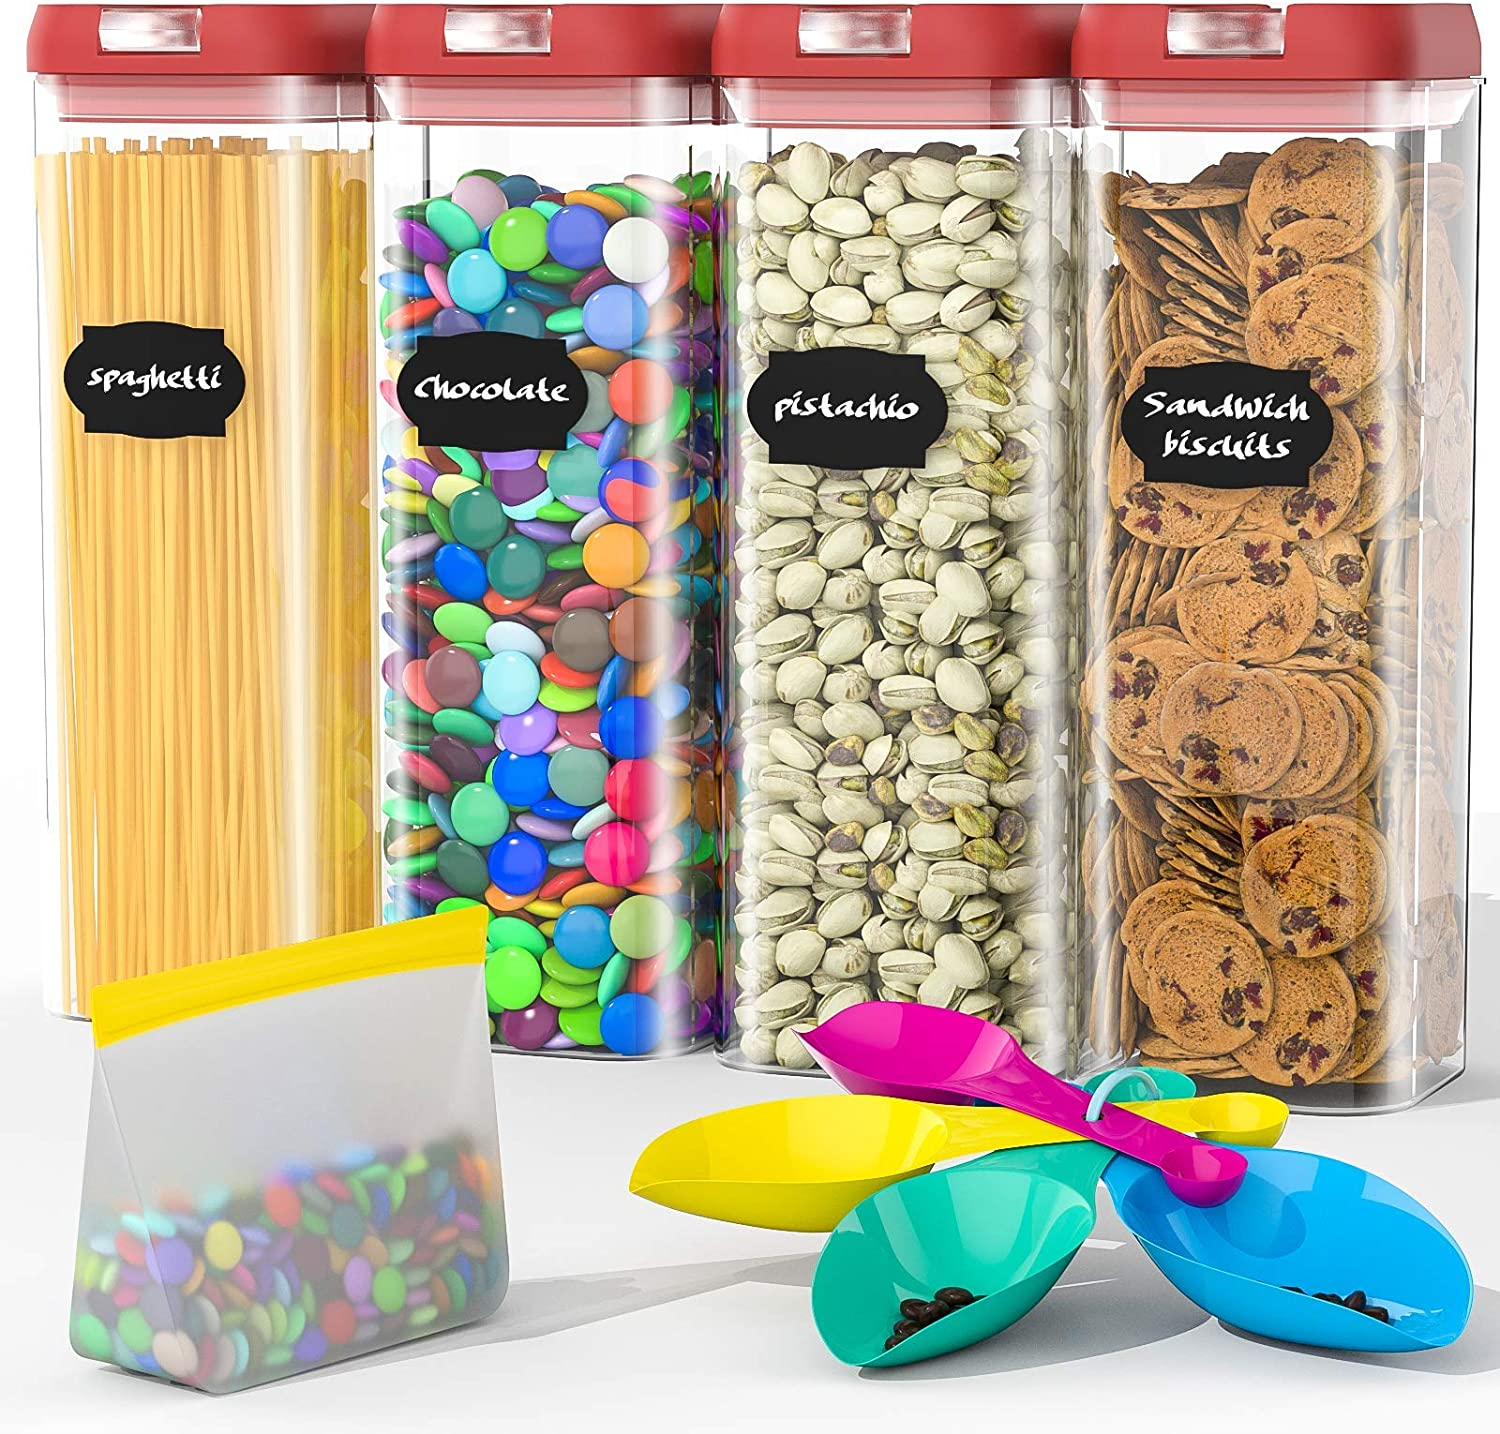 Airtight Food Storage Containers Set, BPA Free Plastic Cereal Containers Premium Kitchen Pantry Organization and Storage Container - Includes Spoon and a Small Food Storage Bag (4 Pieces)